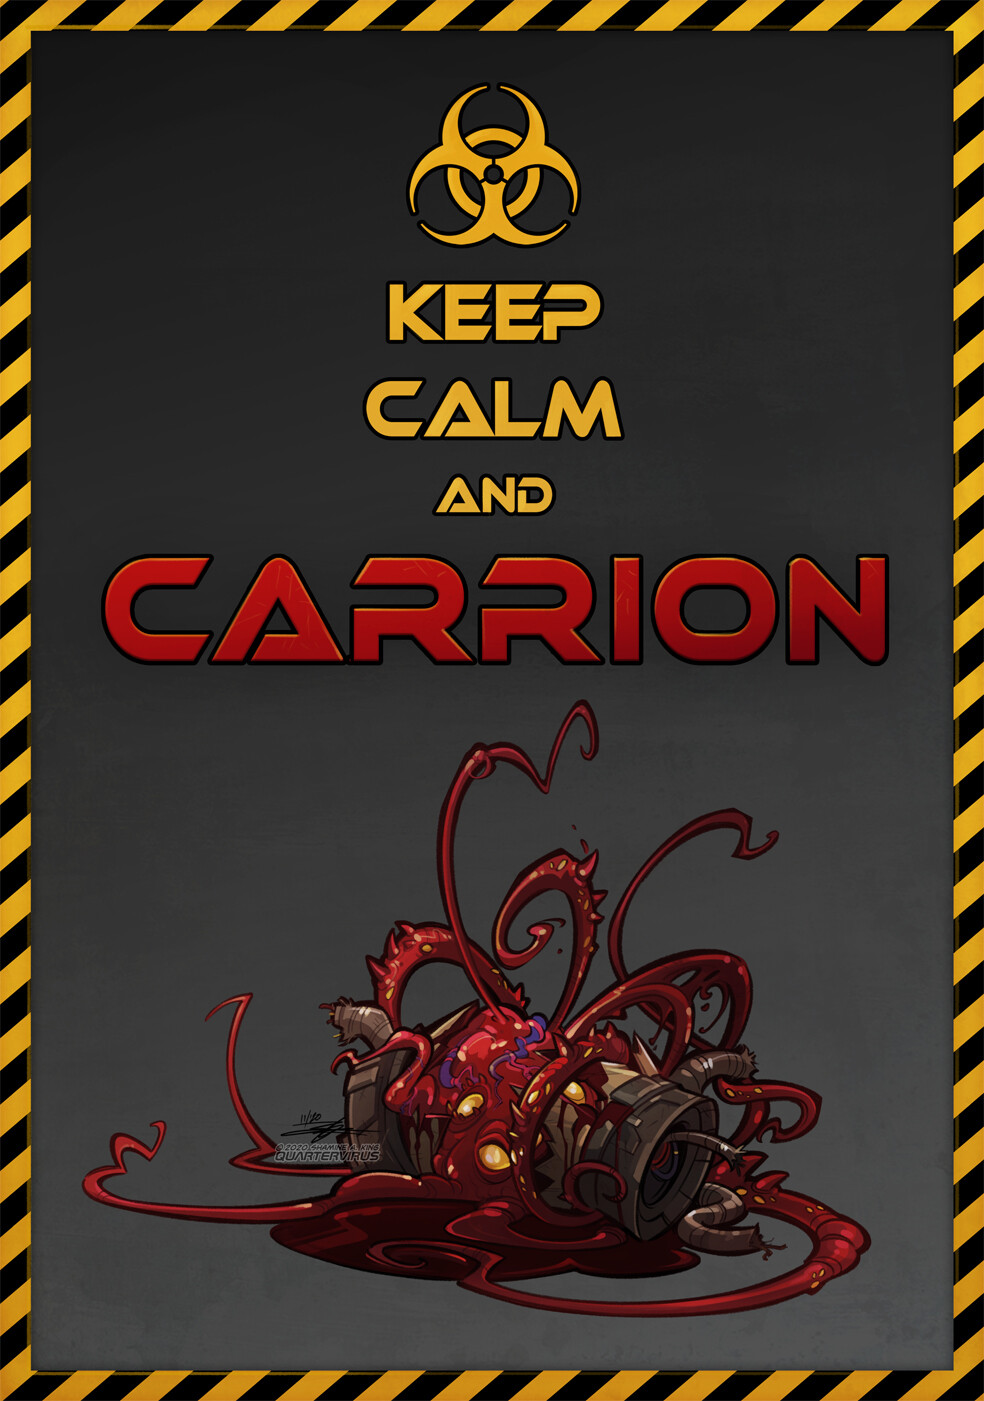 Belated fanart of the game CARRION, which I played over Halloween. But er... red is seasonal??